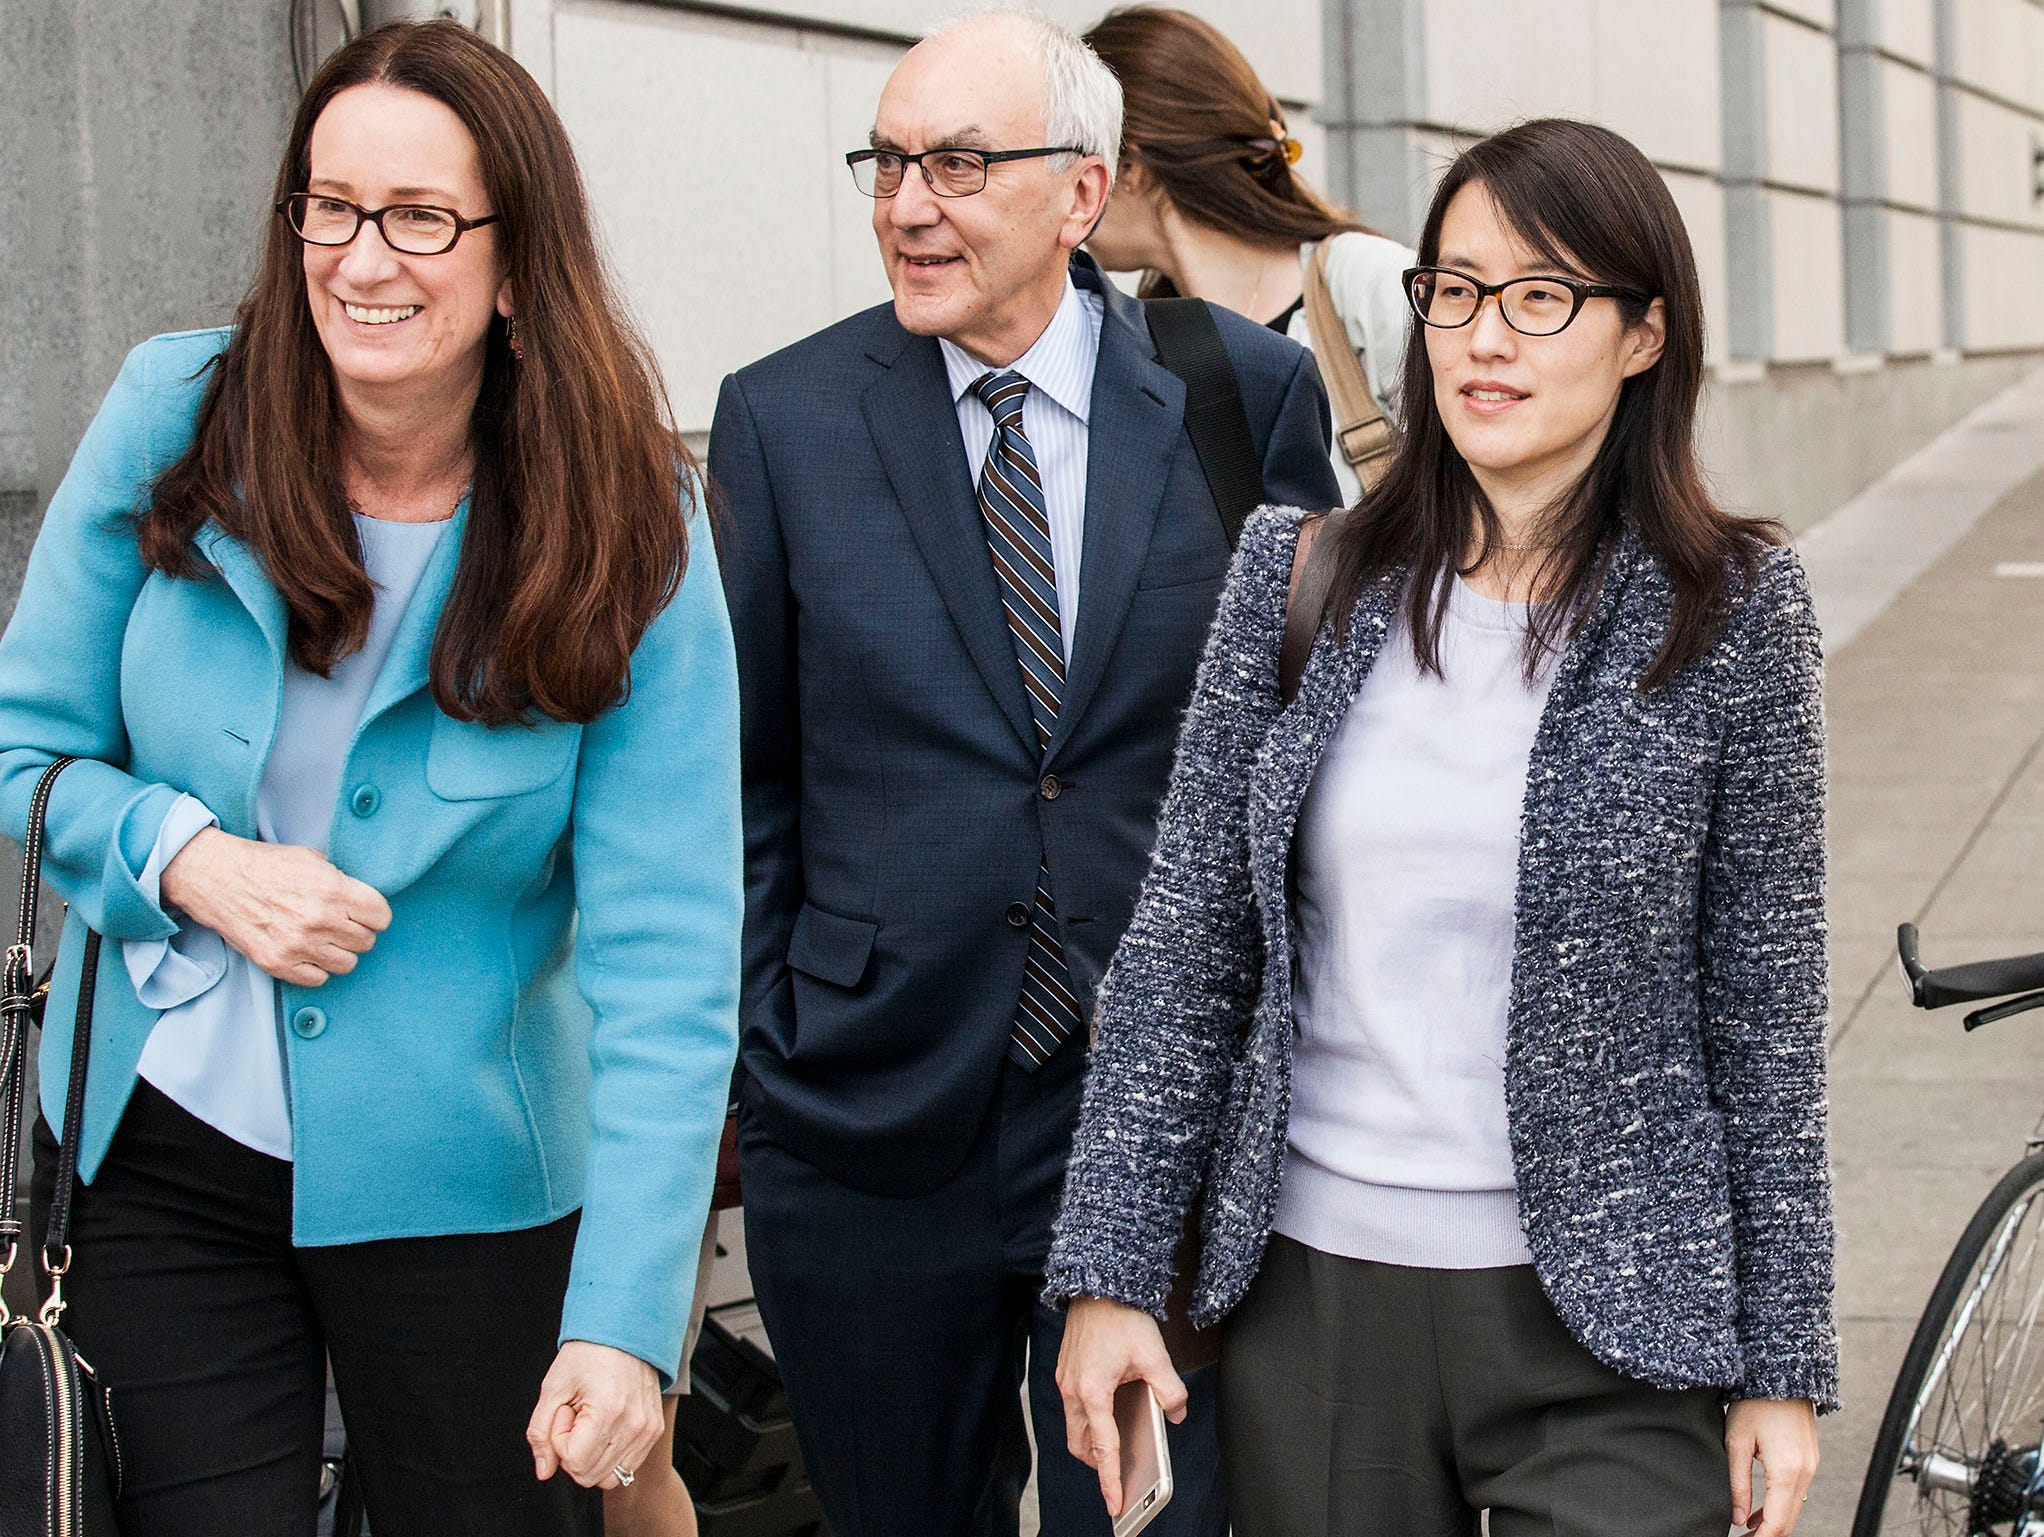 Ellen Pao, far right, a former venture capitalist at Kleiner Perkins Caufield and Byers, leaves the San Francisco Superior  Courthouse in San Francisco, CA with her attorneys Therese Lawless, left, and Alan Exelrod, center. Pao is seeking $16 million